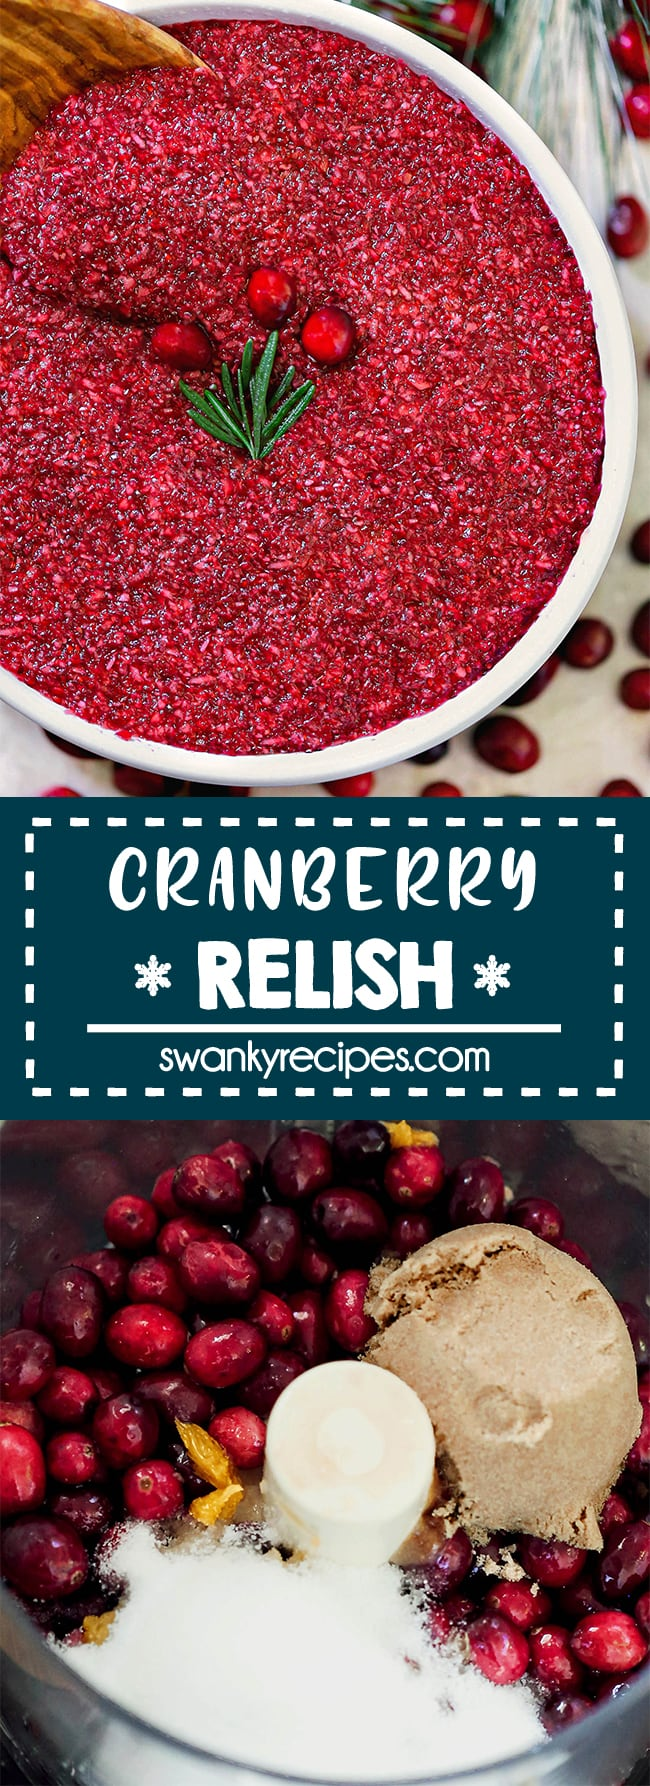 Cranberry Relish - Quick, easy cranberry condiment for Thanksgiving. Tart, sweet, and delicious to serve in place of cranberry sauce or in addition to it. We always make this and family loves it. Made with cranberries, orange juice, sugar, and apple.